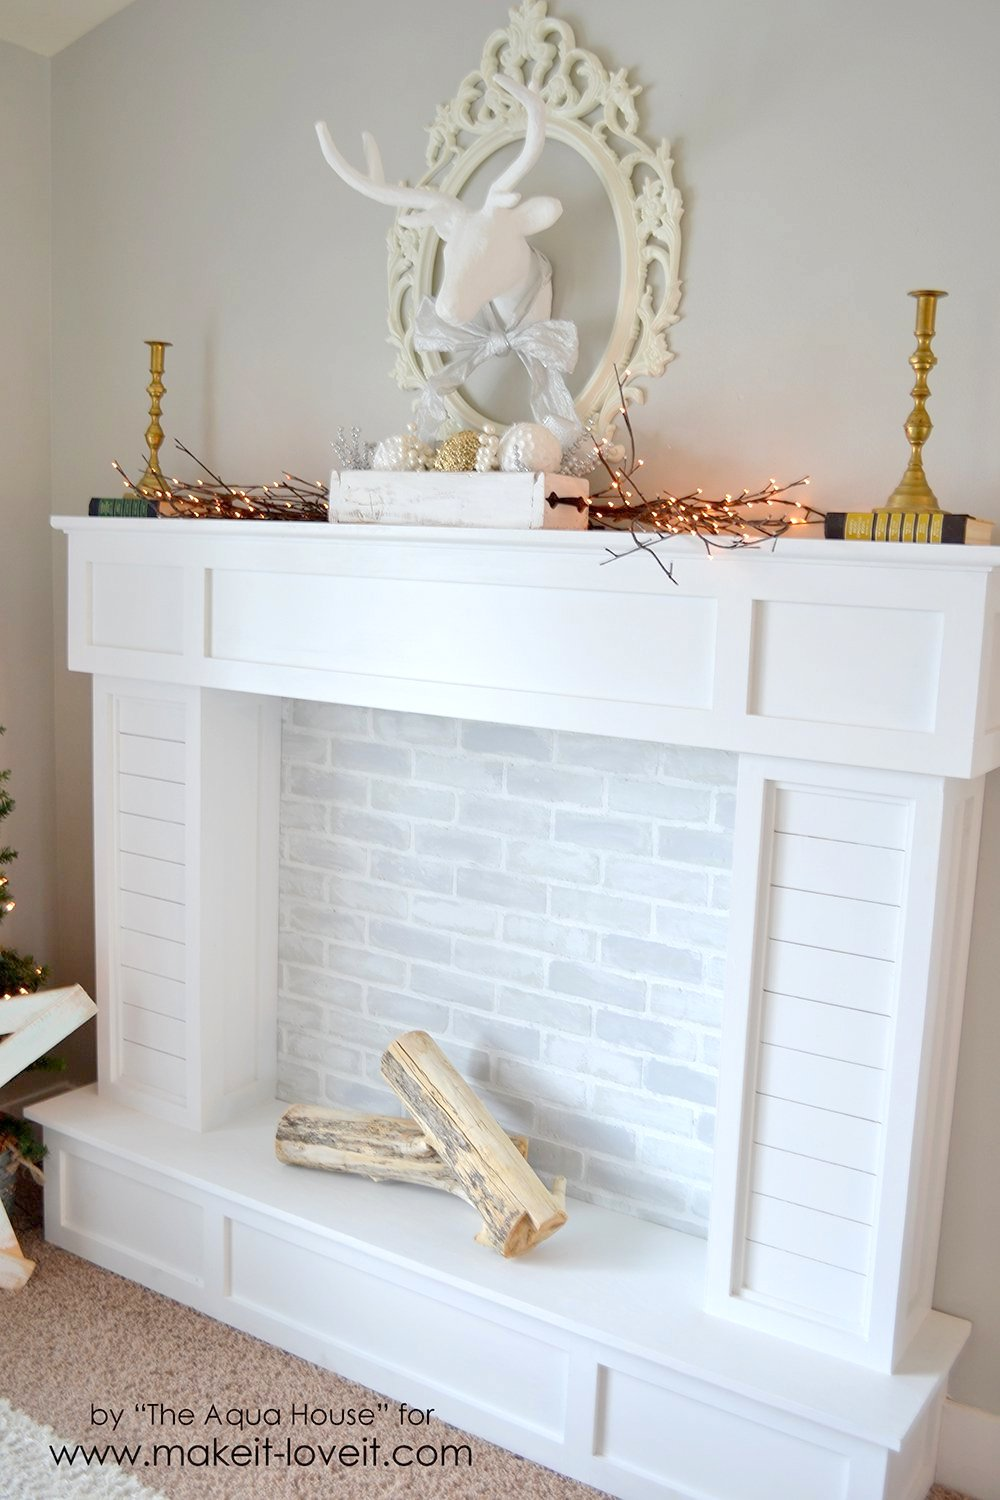 Build A Fake Fireplace Make A Faux Fireplace With Hearththat Looks Absolutely Real